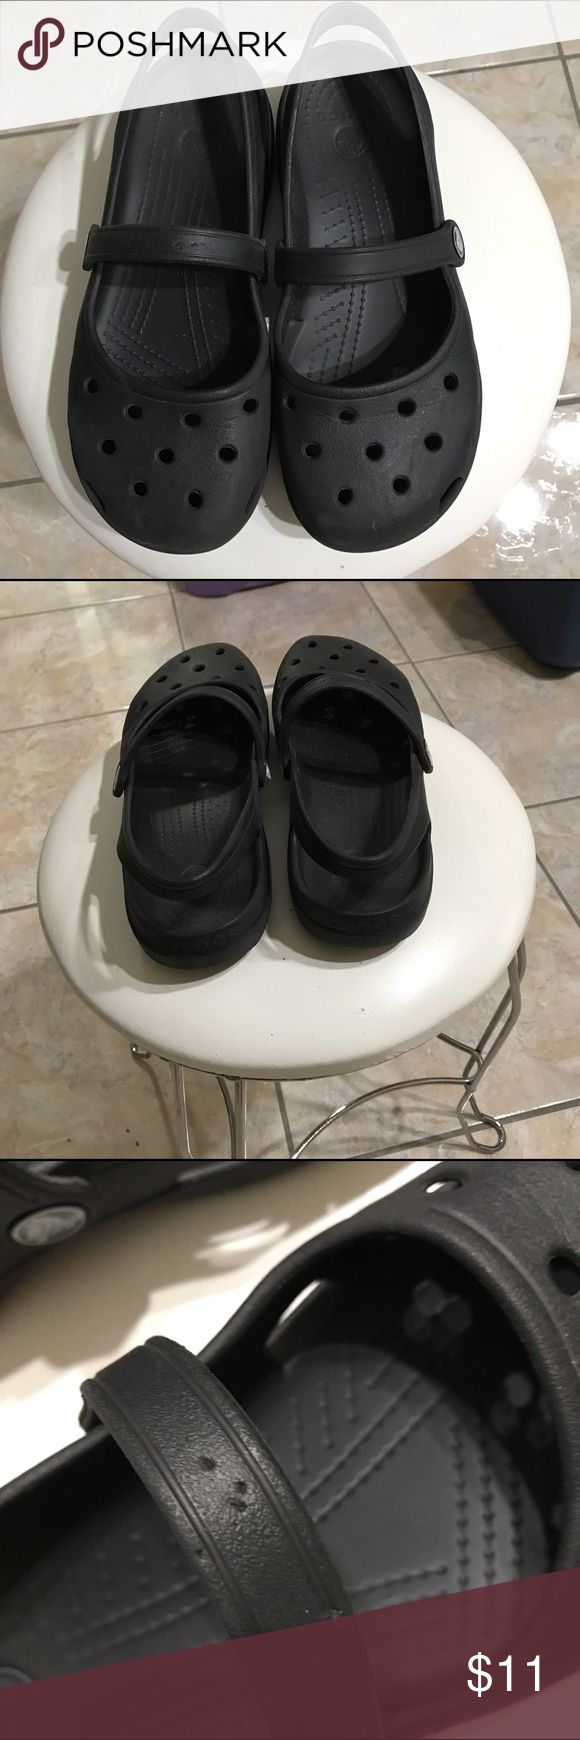 Mary Jane Crocs Gently worn Crocs, in picture #three on the right foot you will see four little holes on strap, really not noticeable, but still in great shape and condition. CROCS Shoes Mules & Clogs